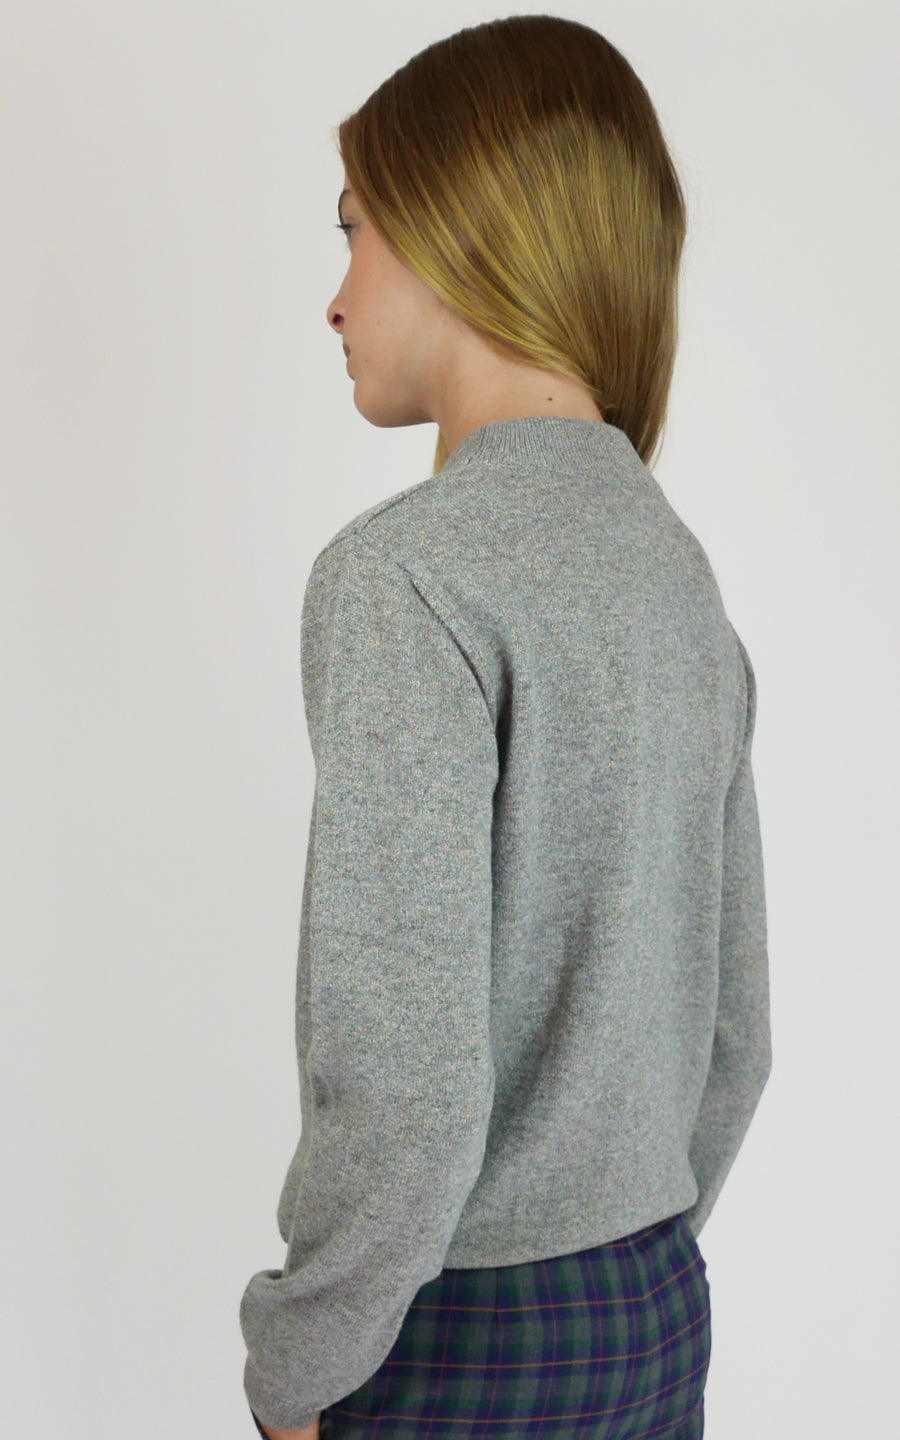 miss L. Ray Sophie cashmere sweater grey children and teen fashion